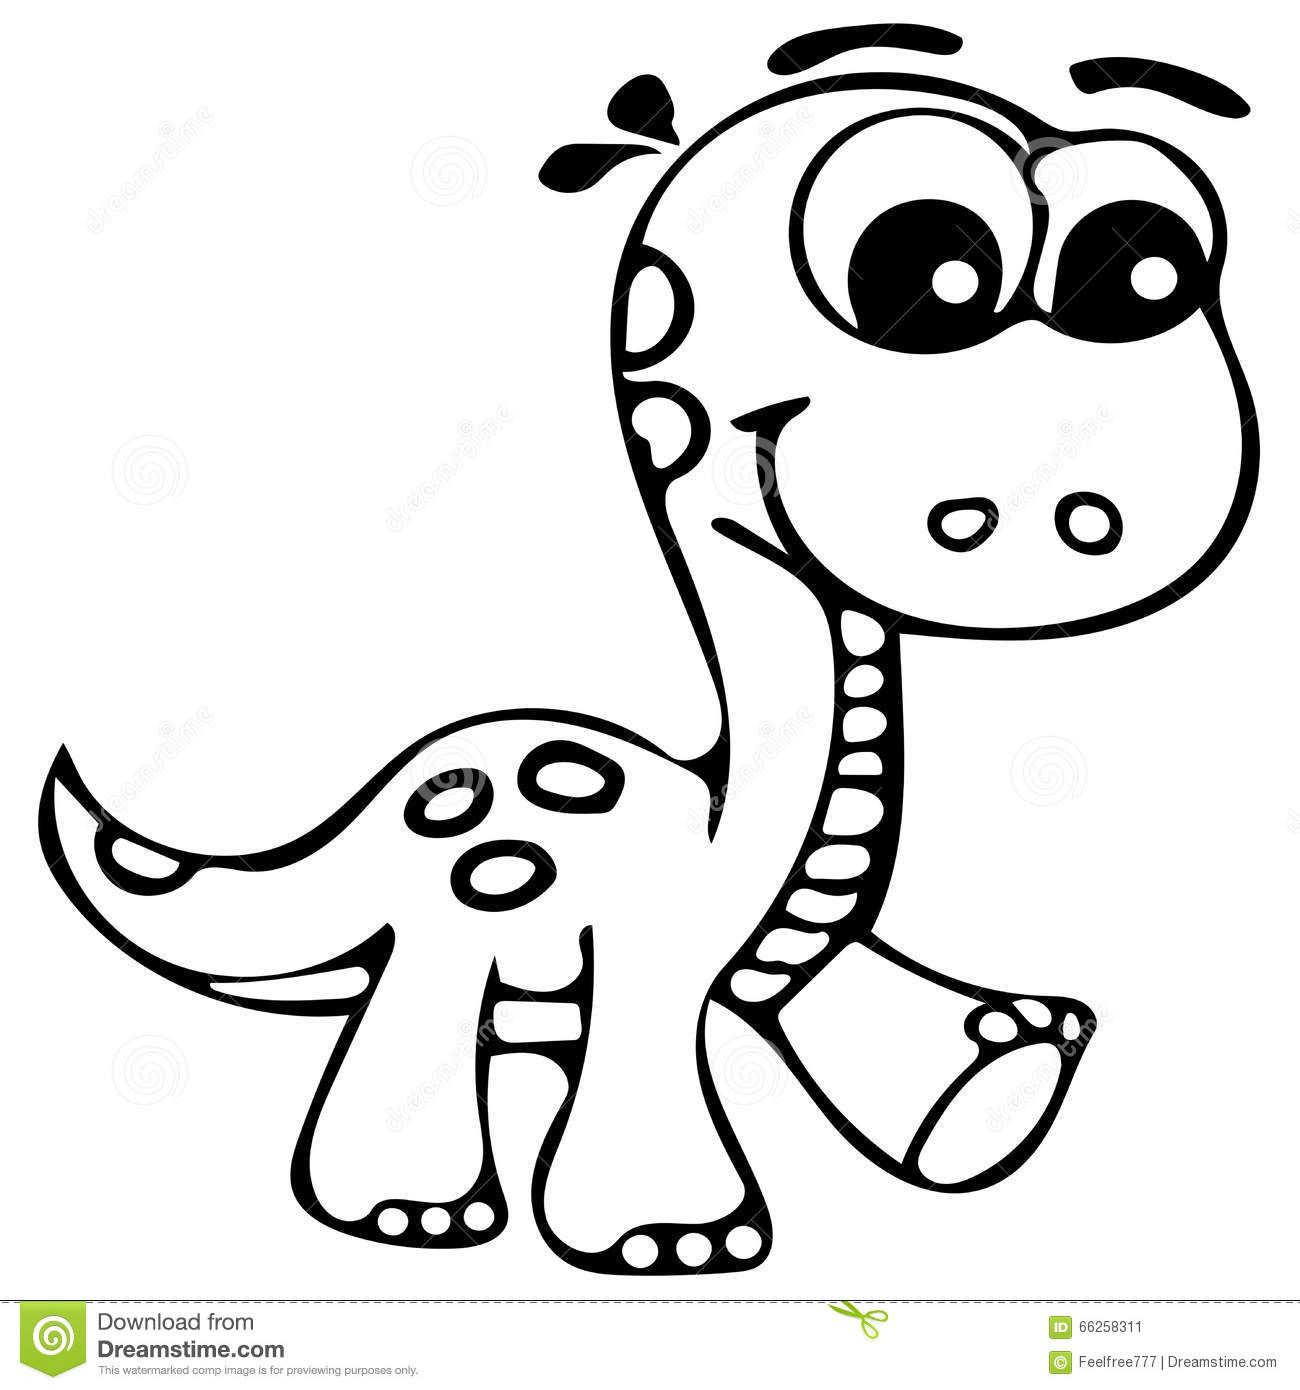 cartoon dinosaur coloring pictures cute dinosaur coloring pages coloring home dinosaur cartoon pictures coloring